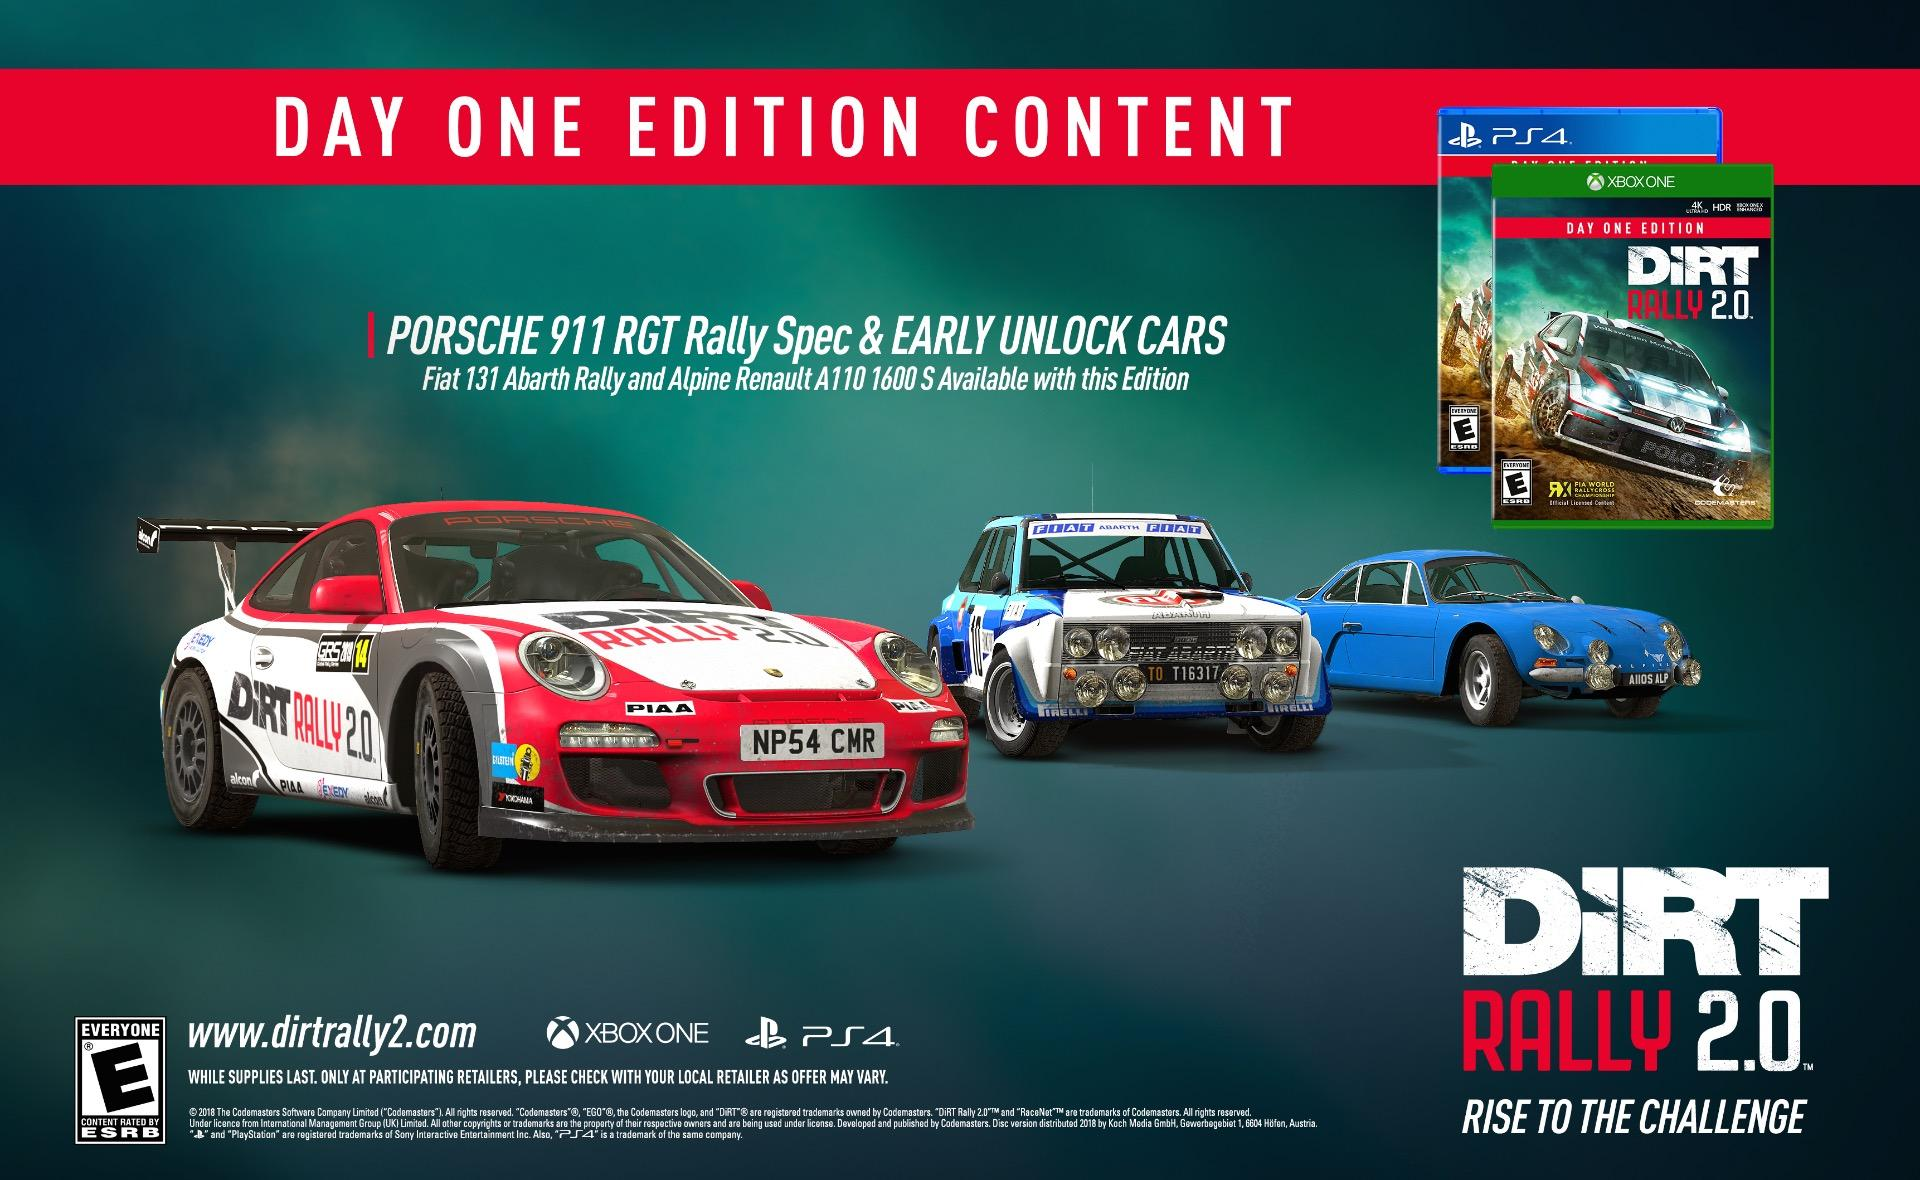 Dirt Rally Xbox One : dirt rally 2 0 day one edition content unveiled xbox one xbox 360 news at ~ Aude.kayakingforconservation.com Haus und Dekorationen